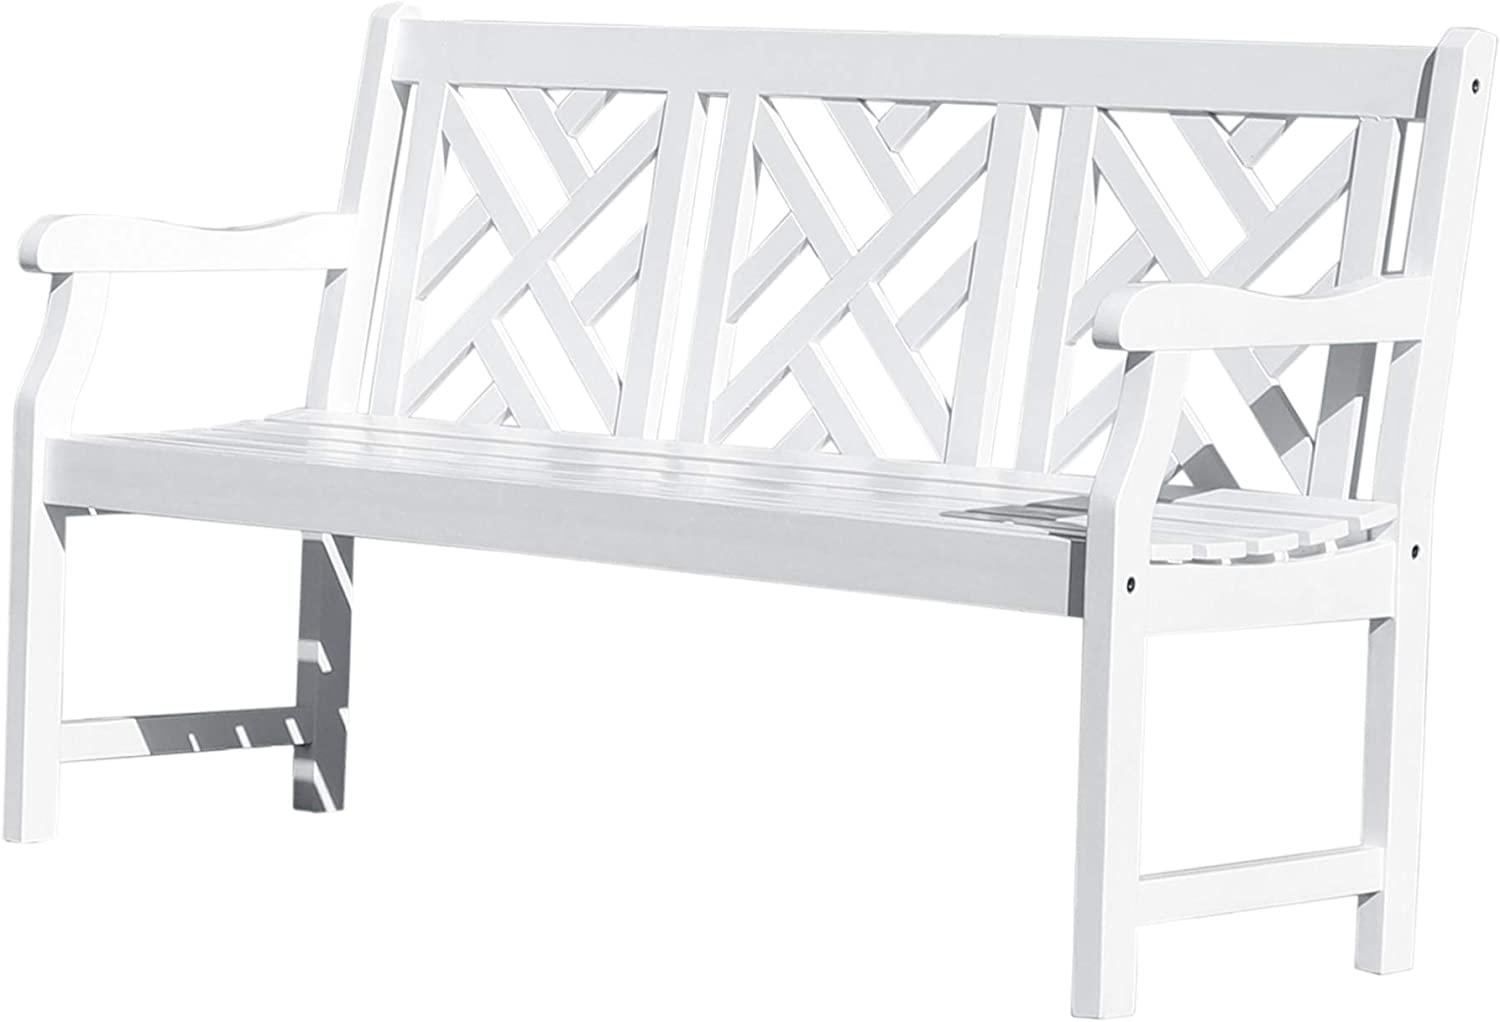 Vifah Painted 5Ft Martha Latice Acacia White Wooden Bench for 3 Seater in Entry Way, Porch, Balcony, Deck, Garden, Patio, Backyard, Outdoor Seating, 550 lbs Capacity